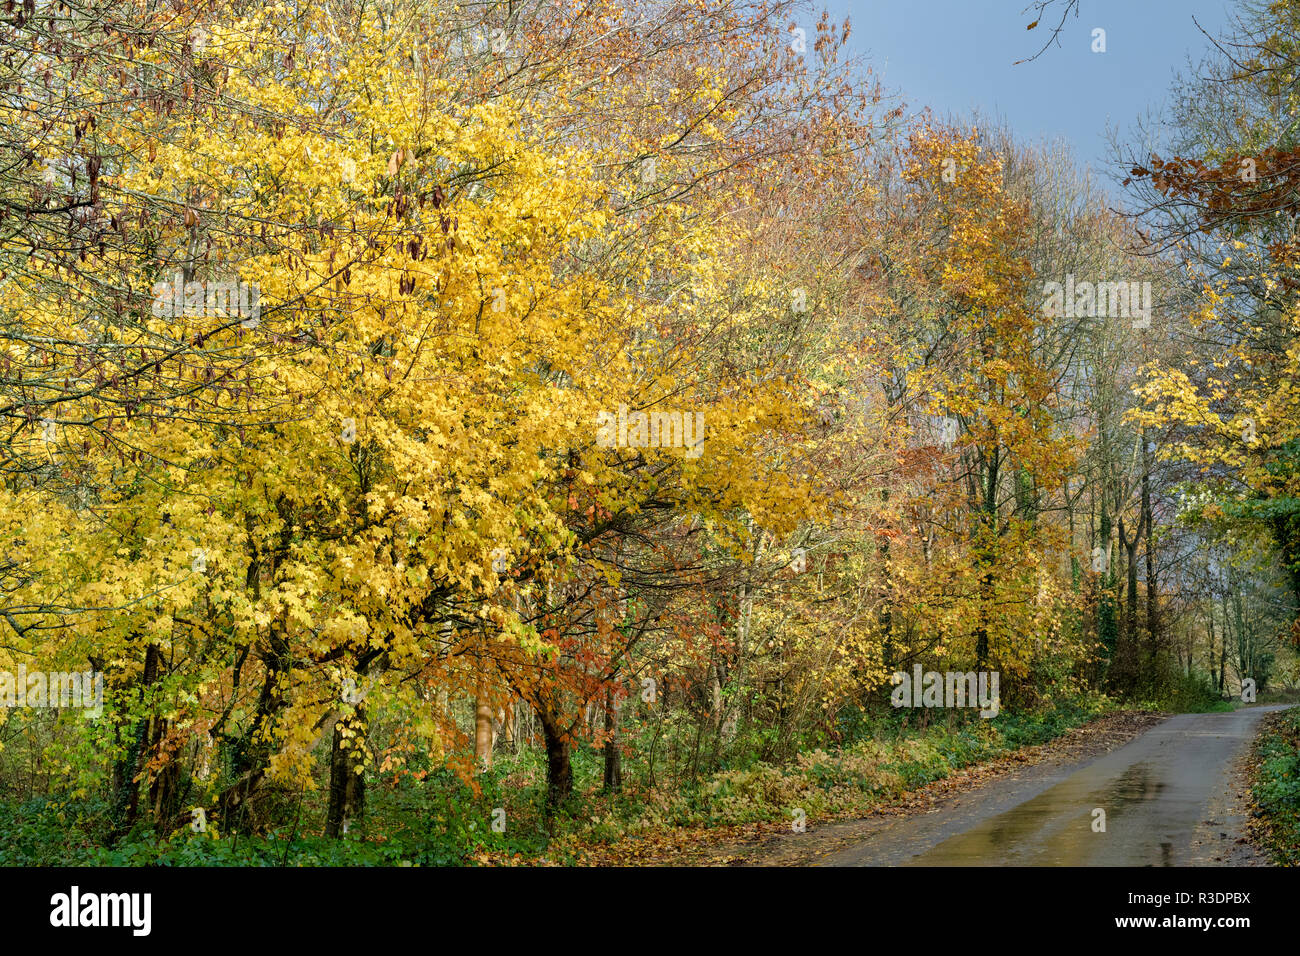 Acer campestre. Autumn Field maple trees along a road through Newbottle woods in the autumn. Kings Sutton, Northamptonshire, England - Stock Image